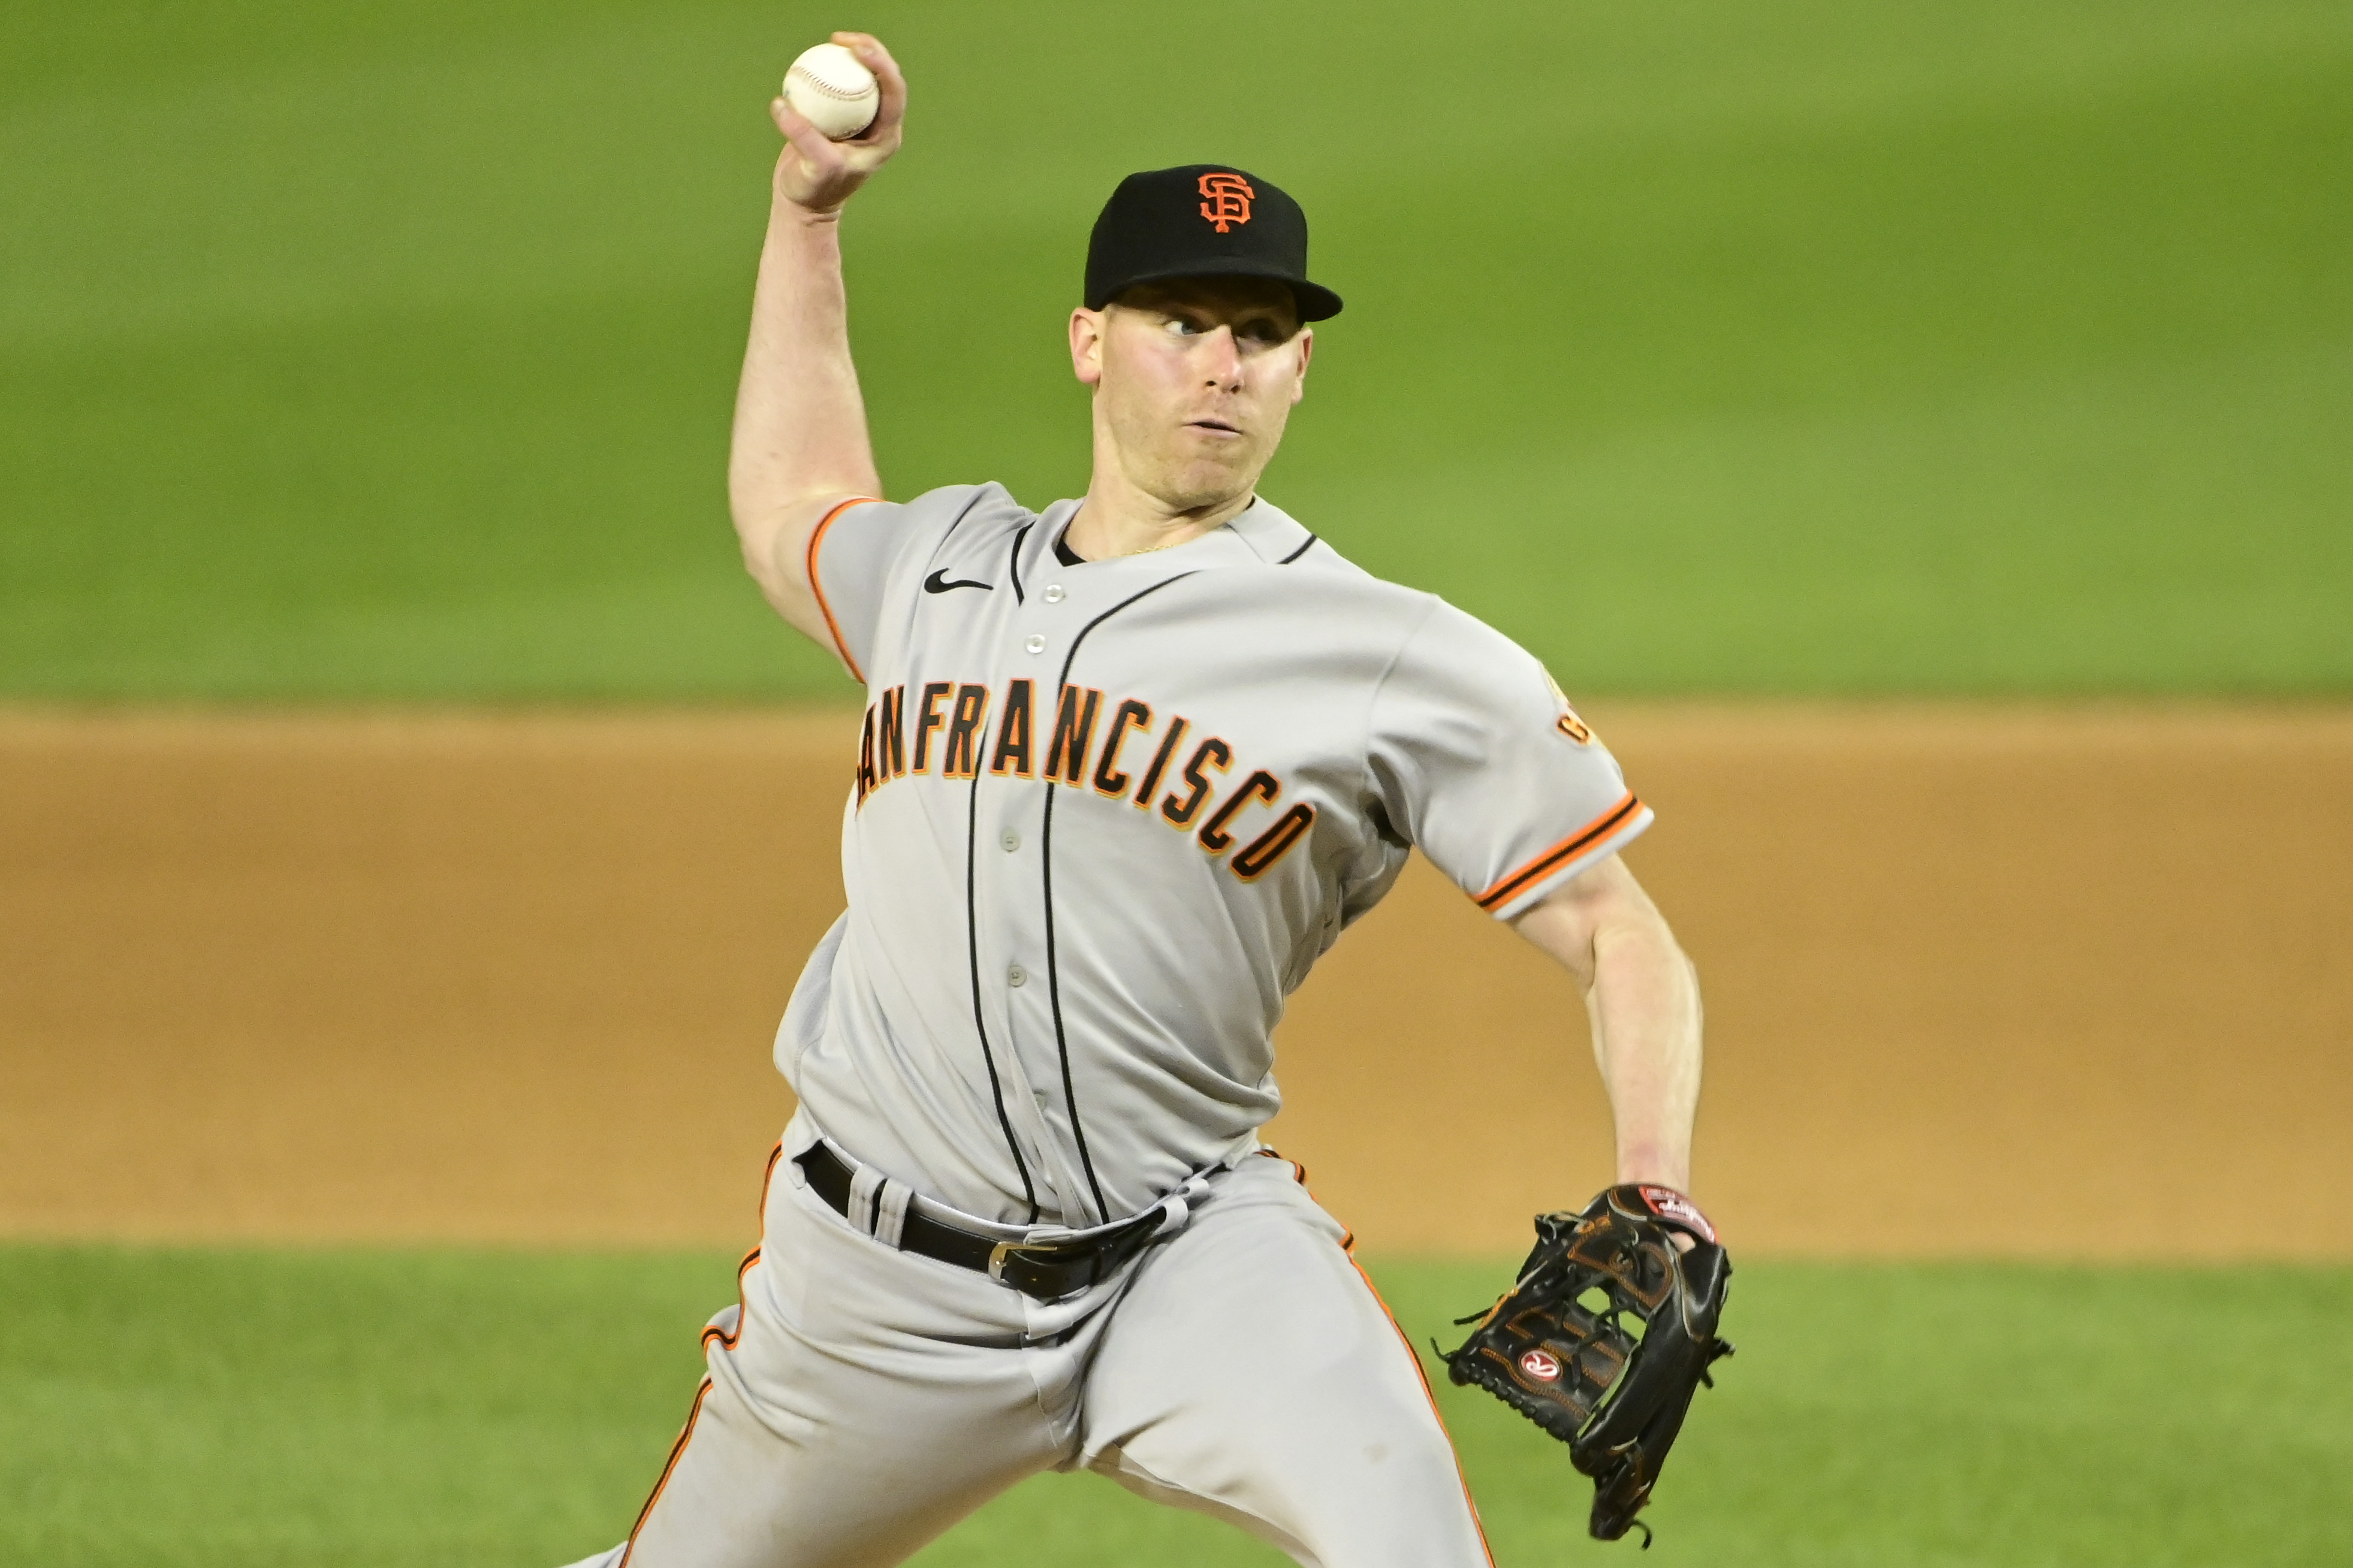 Jun 11, 2021; Washington, District of Columbia, USA;  San Francisco Giants starting pitcher Anthony DeSclafani (26) delivers ninth inning pitch against the Washington Nationals at Nationals Park. Mandatory Credit: Tommy Gilligan-USA TODAY Sports